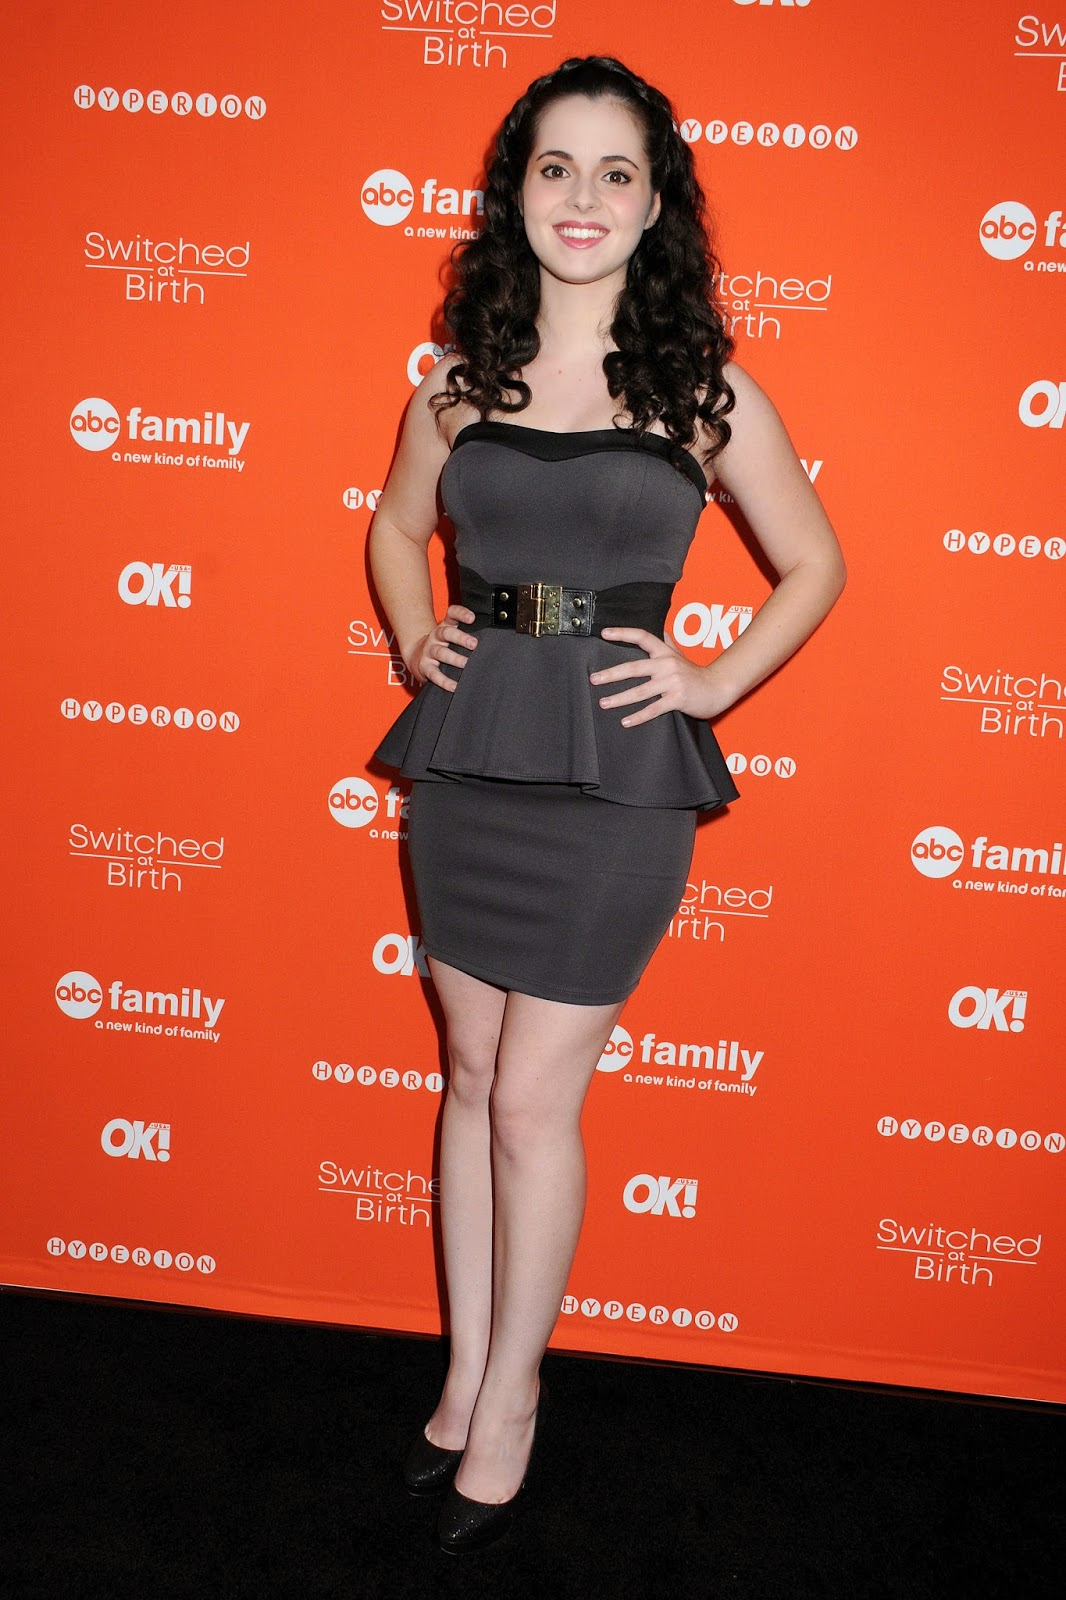 56244 Vanessa Marano Switched at Birth Premiere and Book Launch Party    Vanessa Marano Switched At Birth 2014